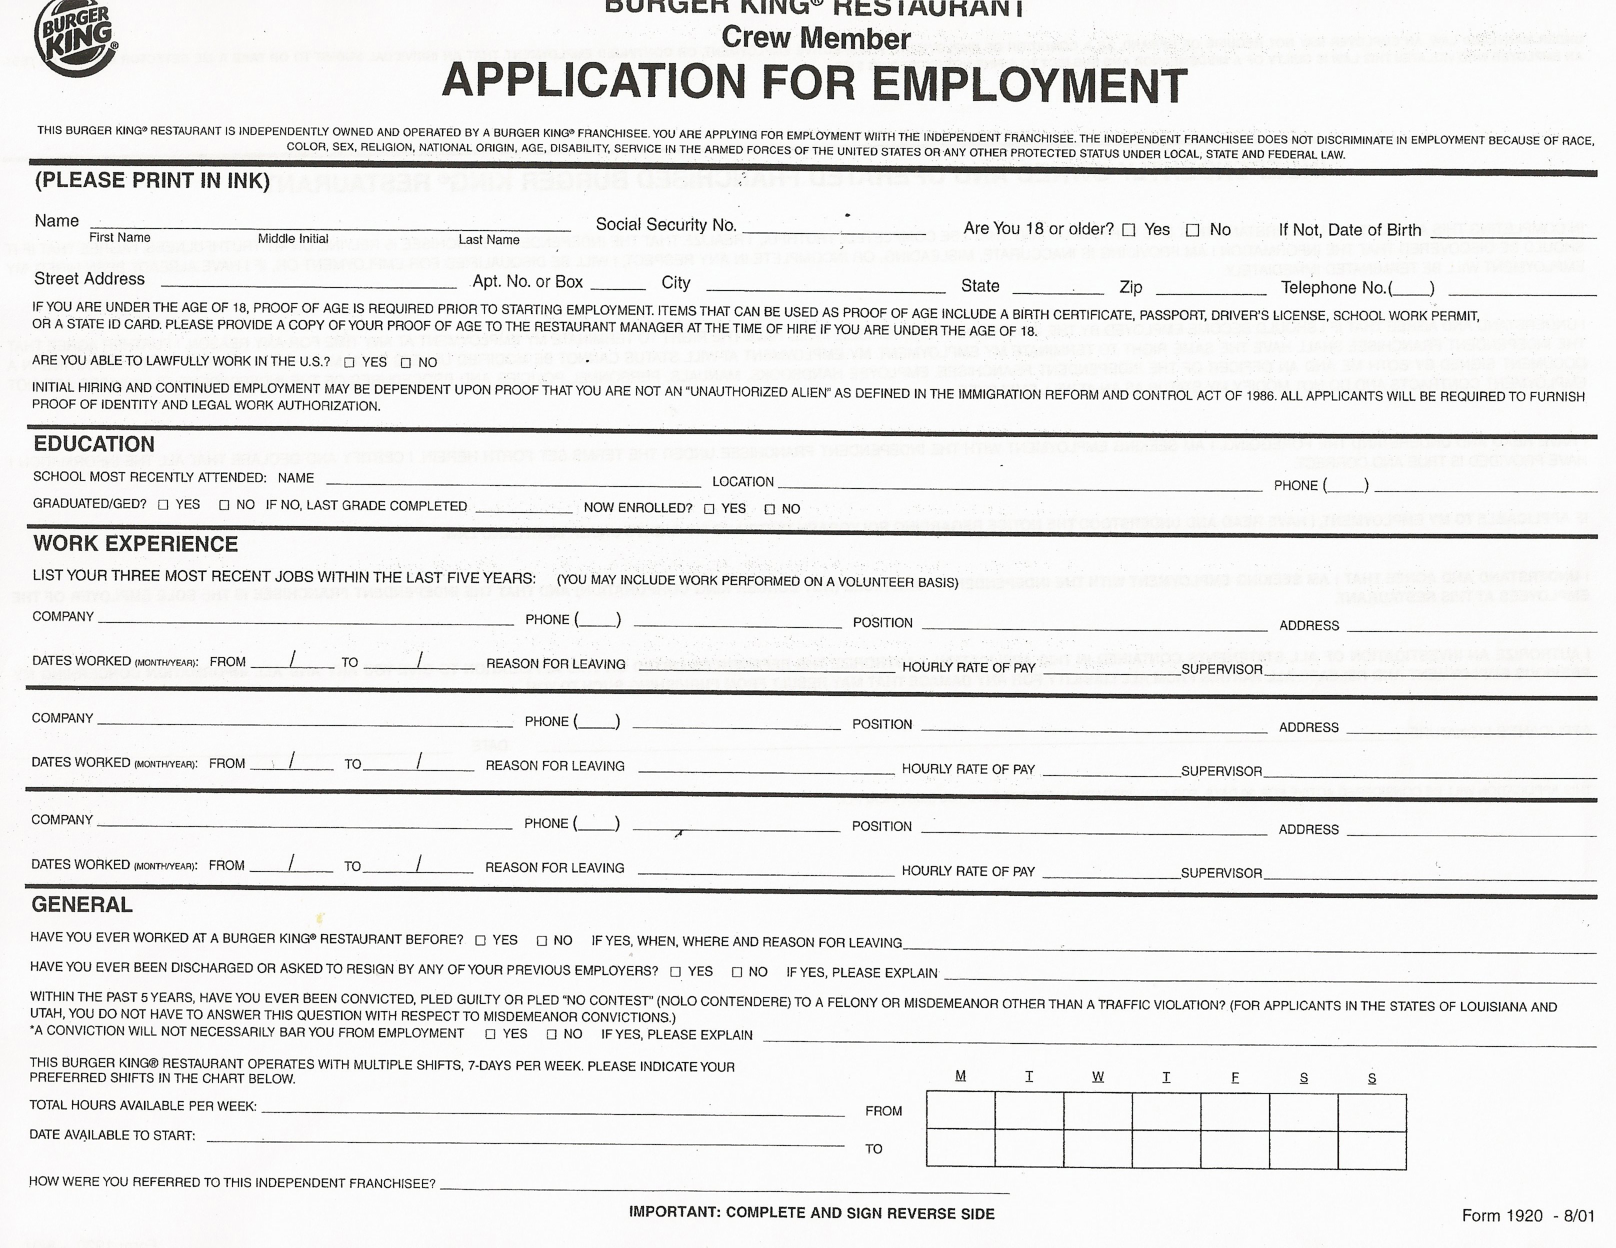 Employment Application Forms to Print | job application Printable ...